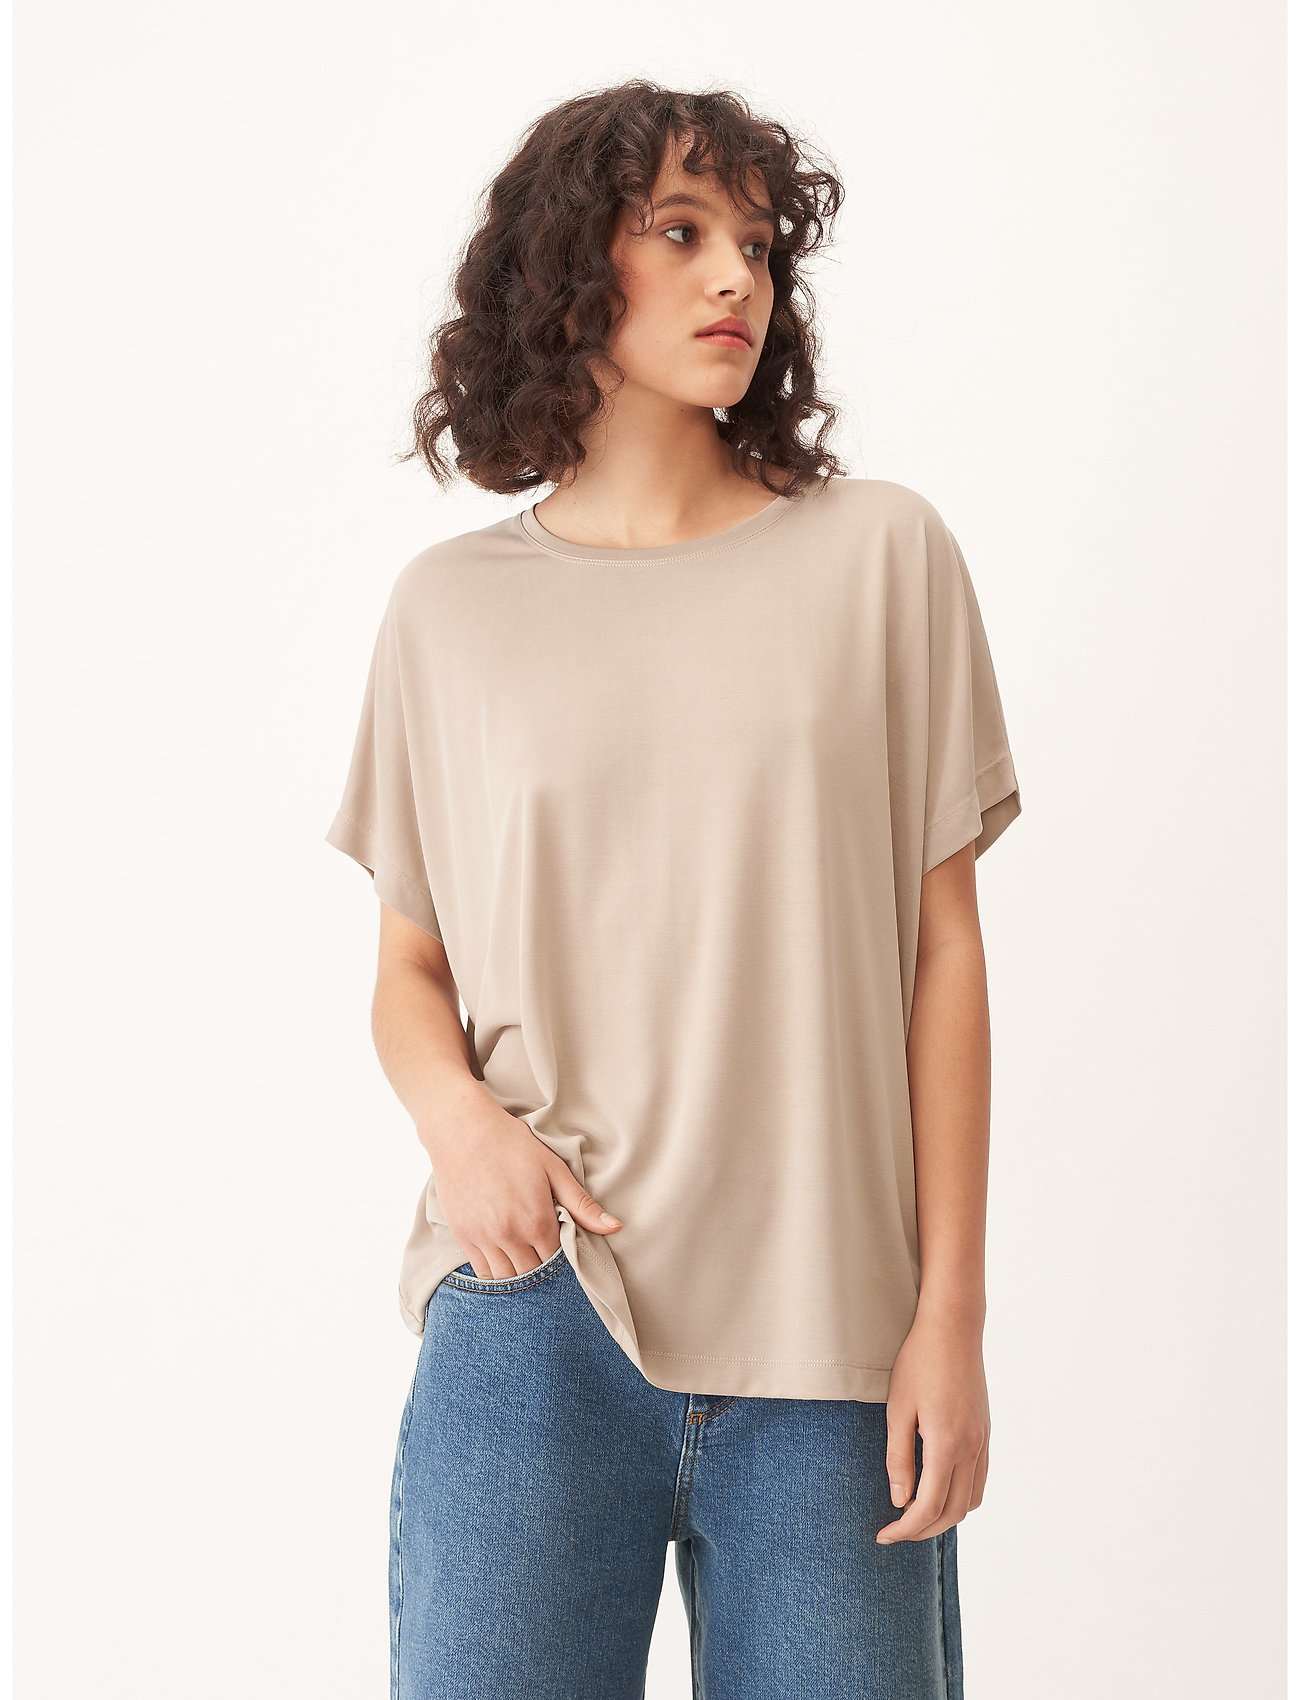 Carin Wester - Shimmer - t-shirts - beige - 0